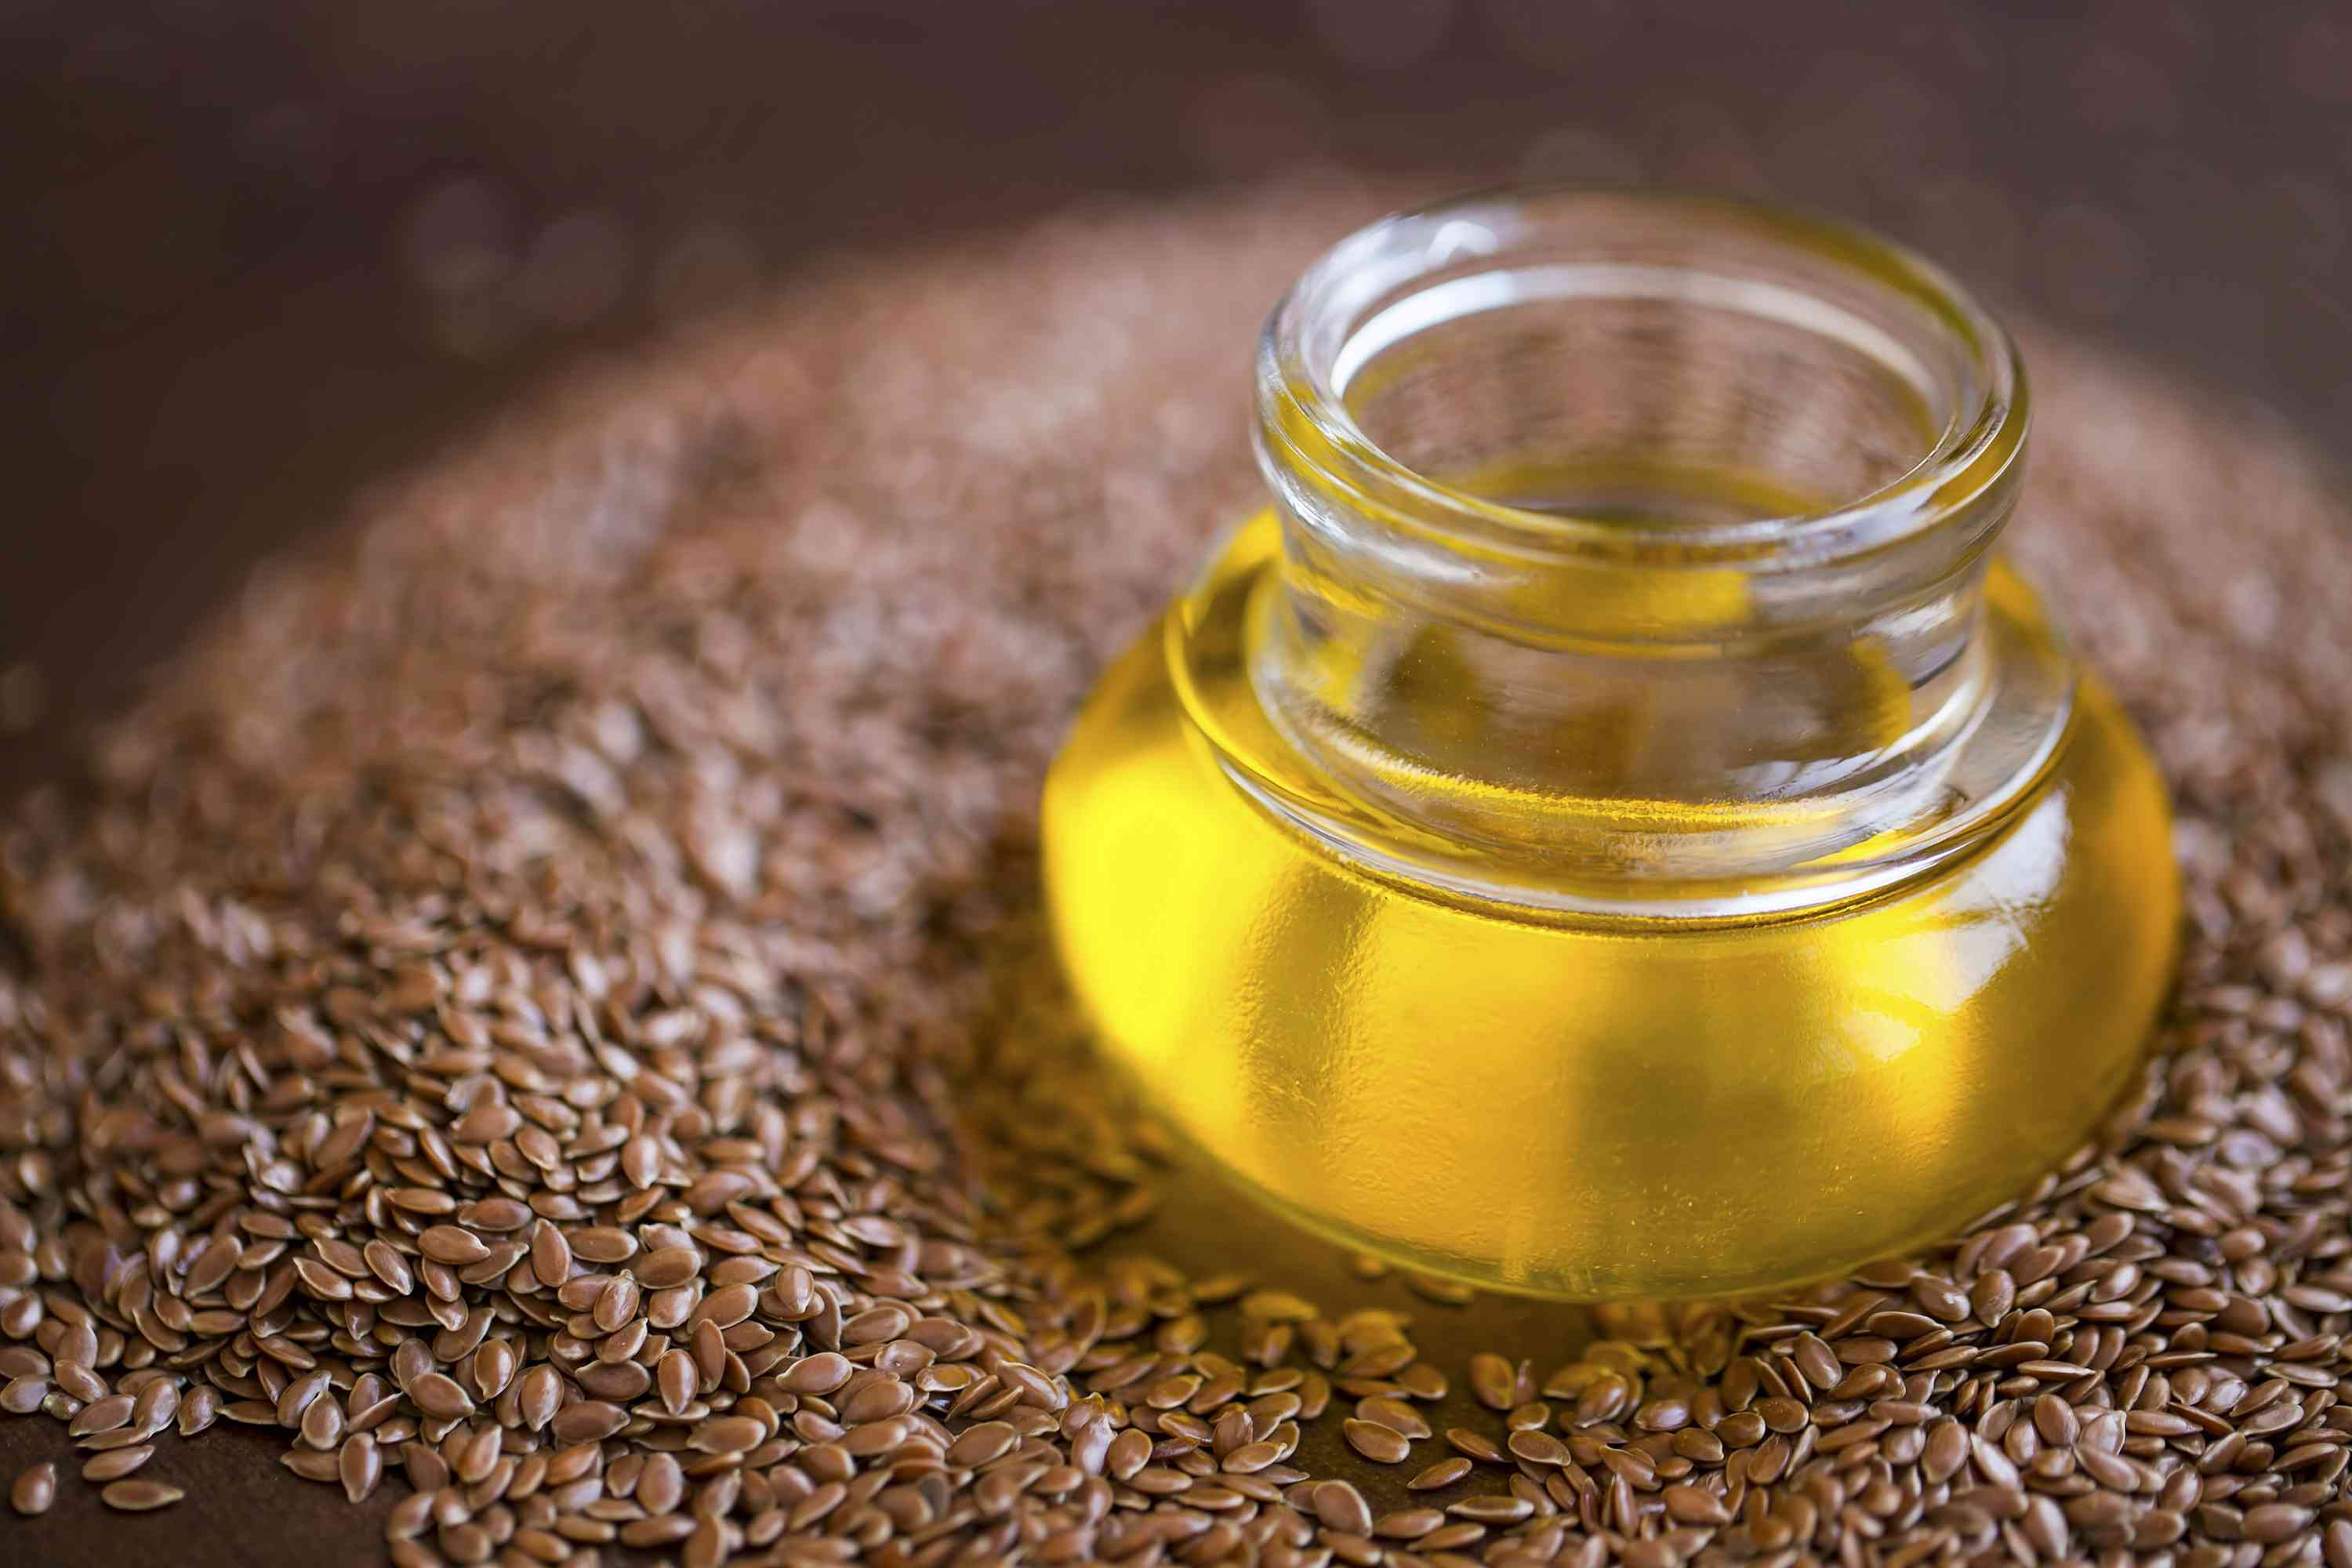 Flax seed oil with flax seeds closeup, selective focus, raw flaxseed oil medicinal oil alternative medicine, omega 3 rich oil